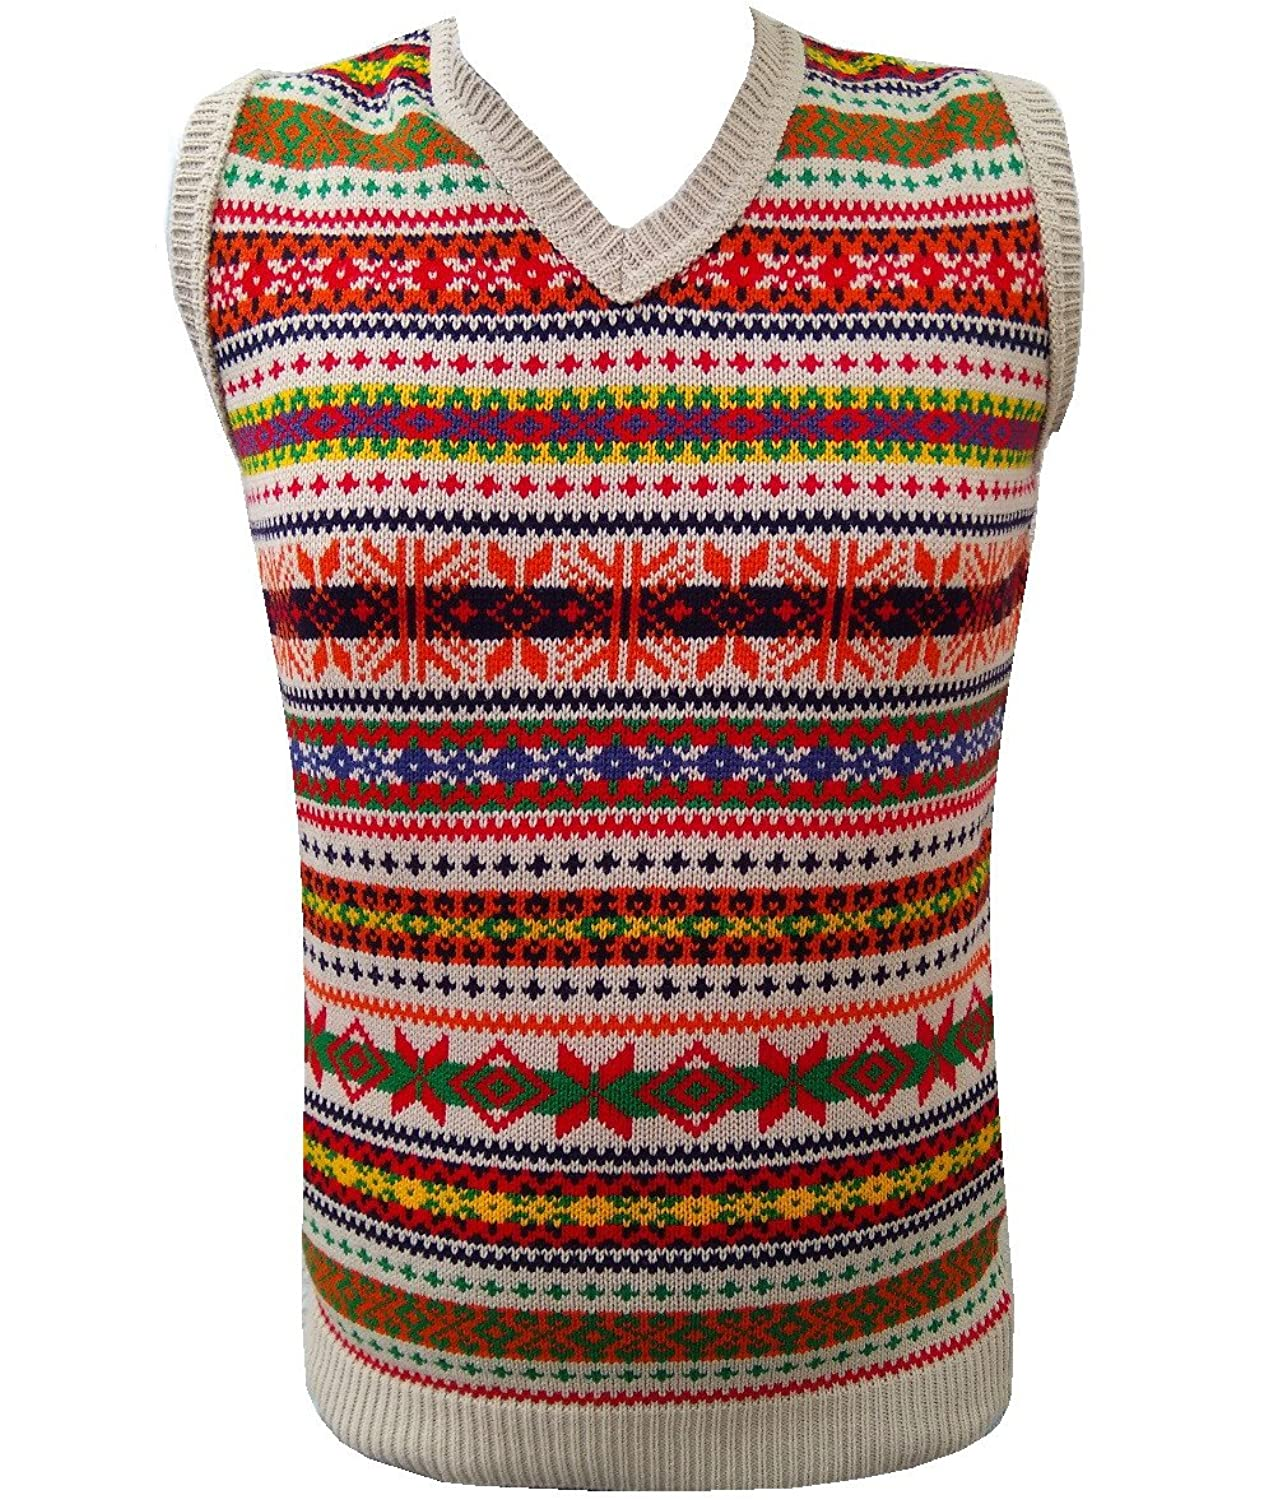 1930s Men's Clothing London Knitwear Gallery Retro Vintage Knitwear Tanktop Sleeveless Golf Sweater £19.99 AT vintagedancer.com